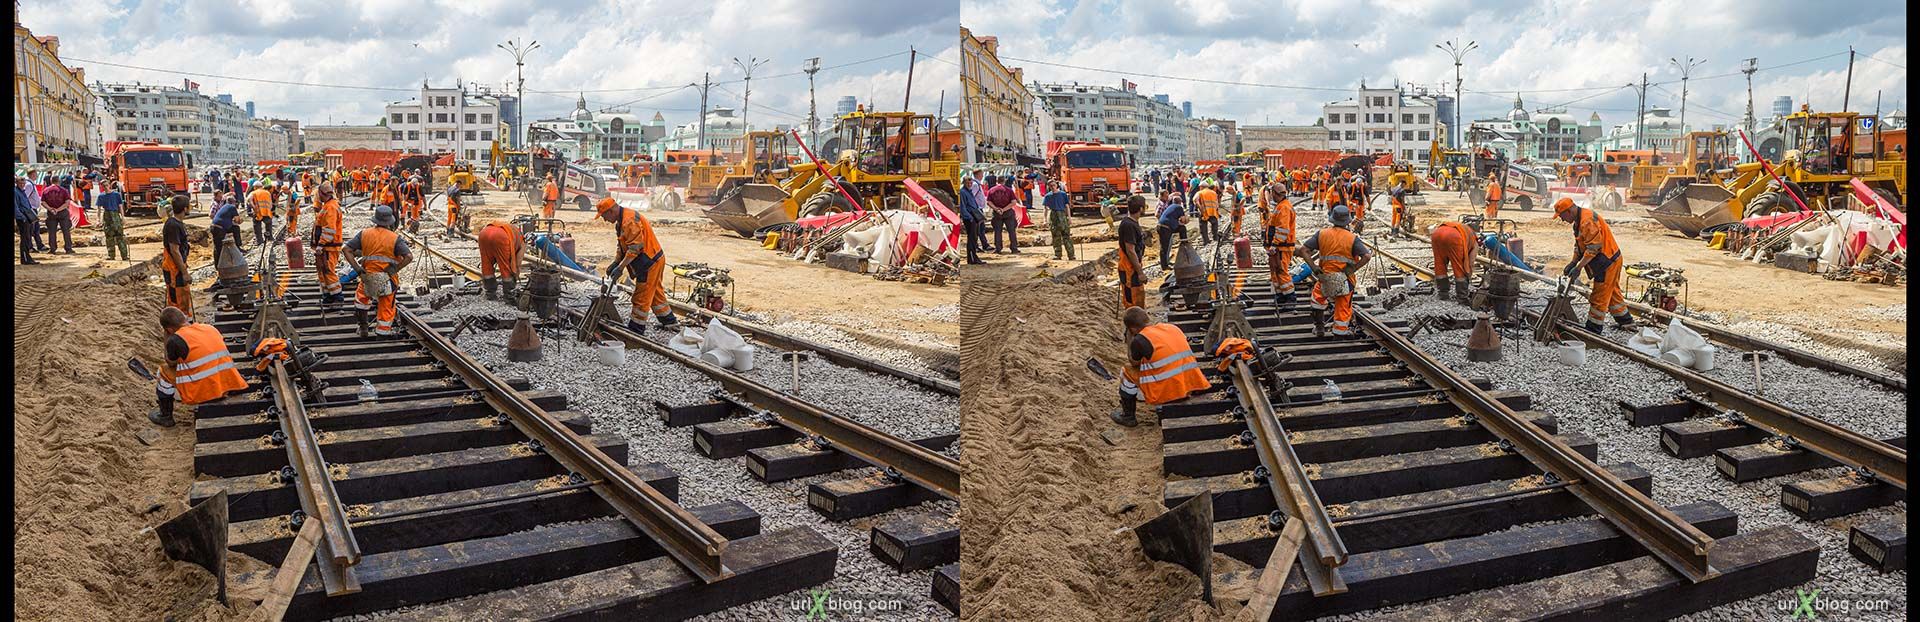 tram, tram tracks, tram rails, repair, road, railway, workers, builders, Belorusskaya, Tverskaya Zastava Square, Moscow, Russia, 3D, stereo pair, cross-eyed, crossview, cross view stereo pair, stereoscopic